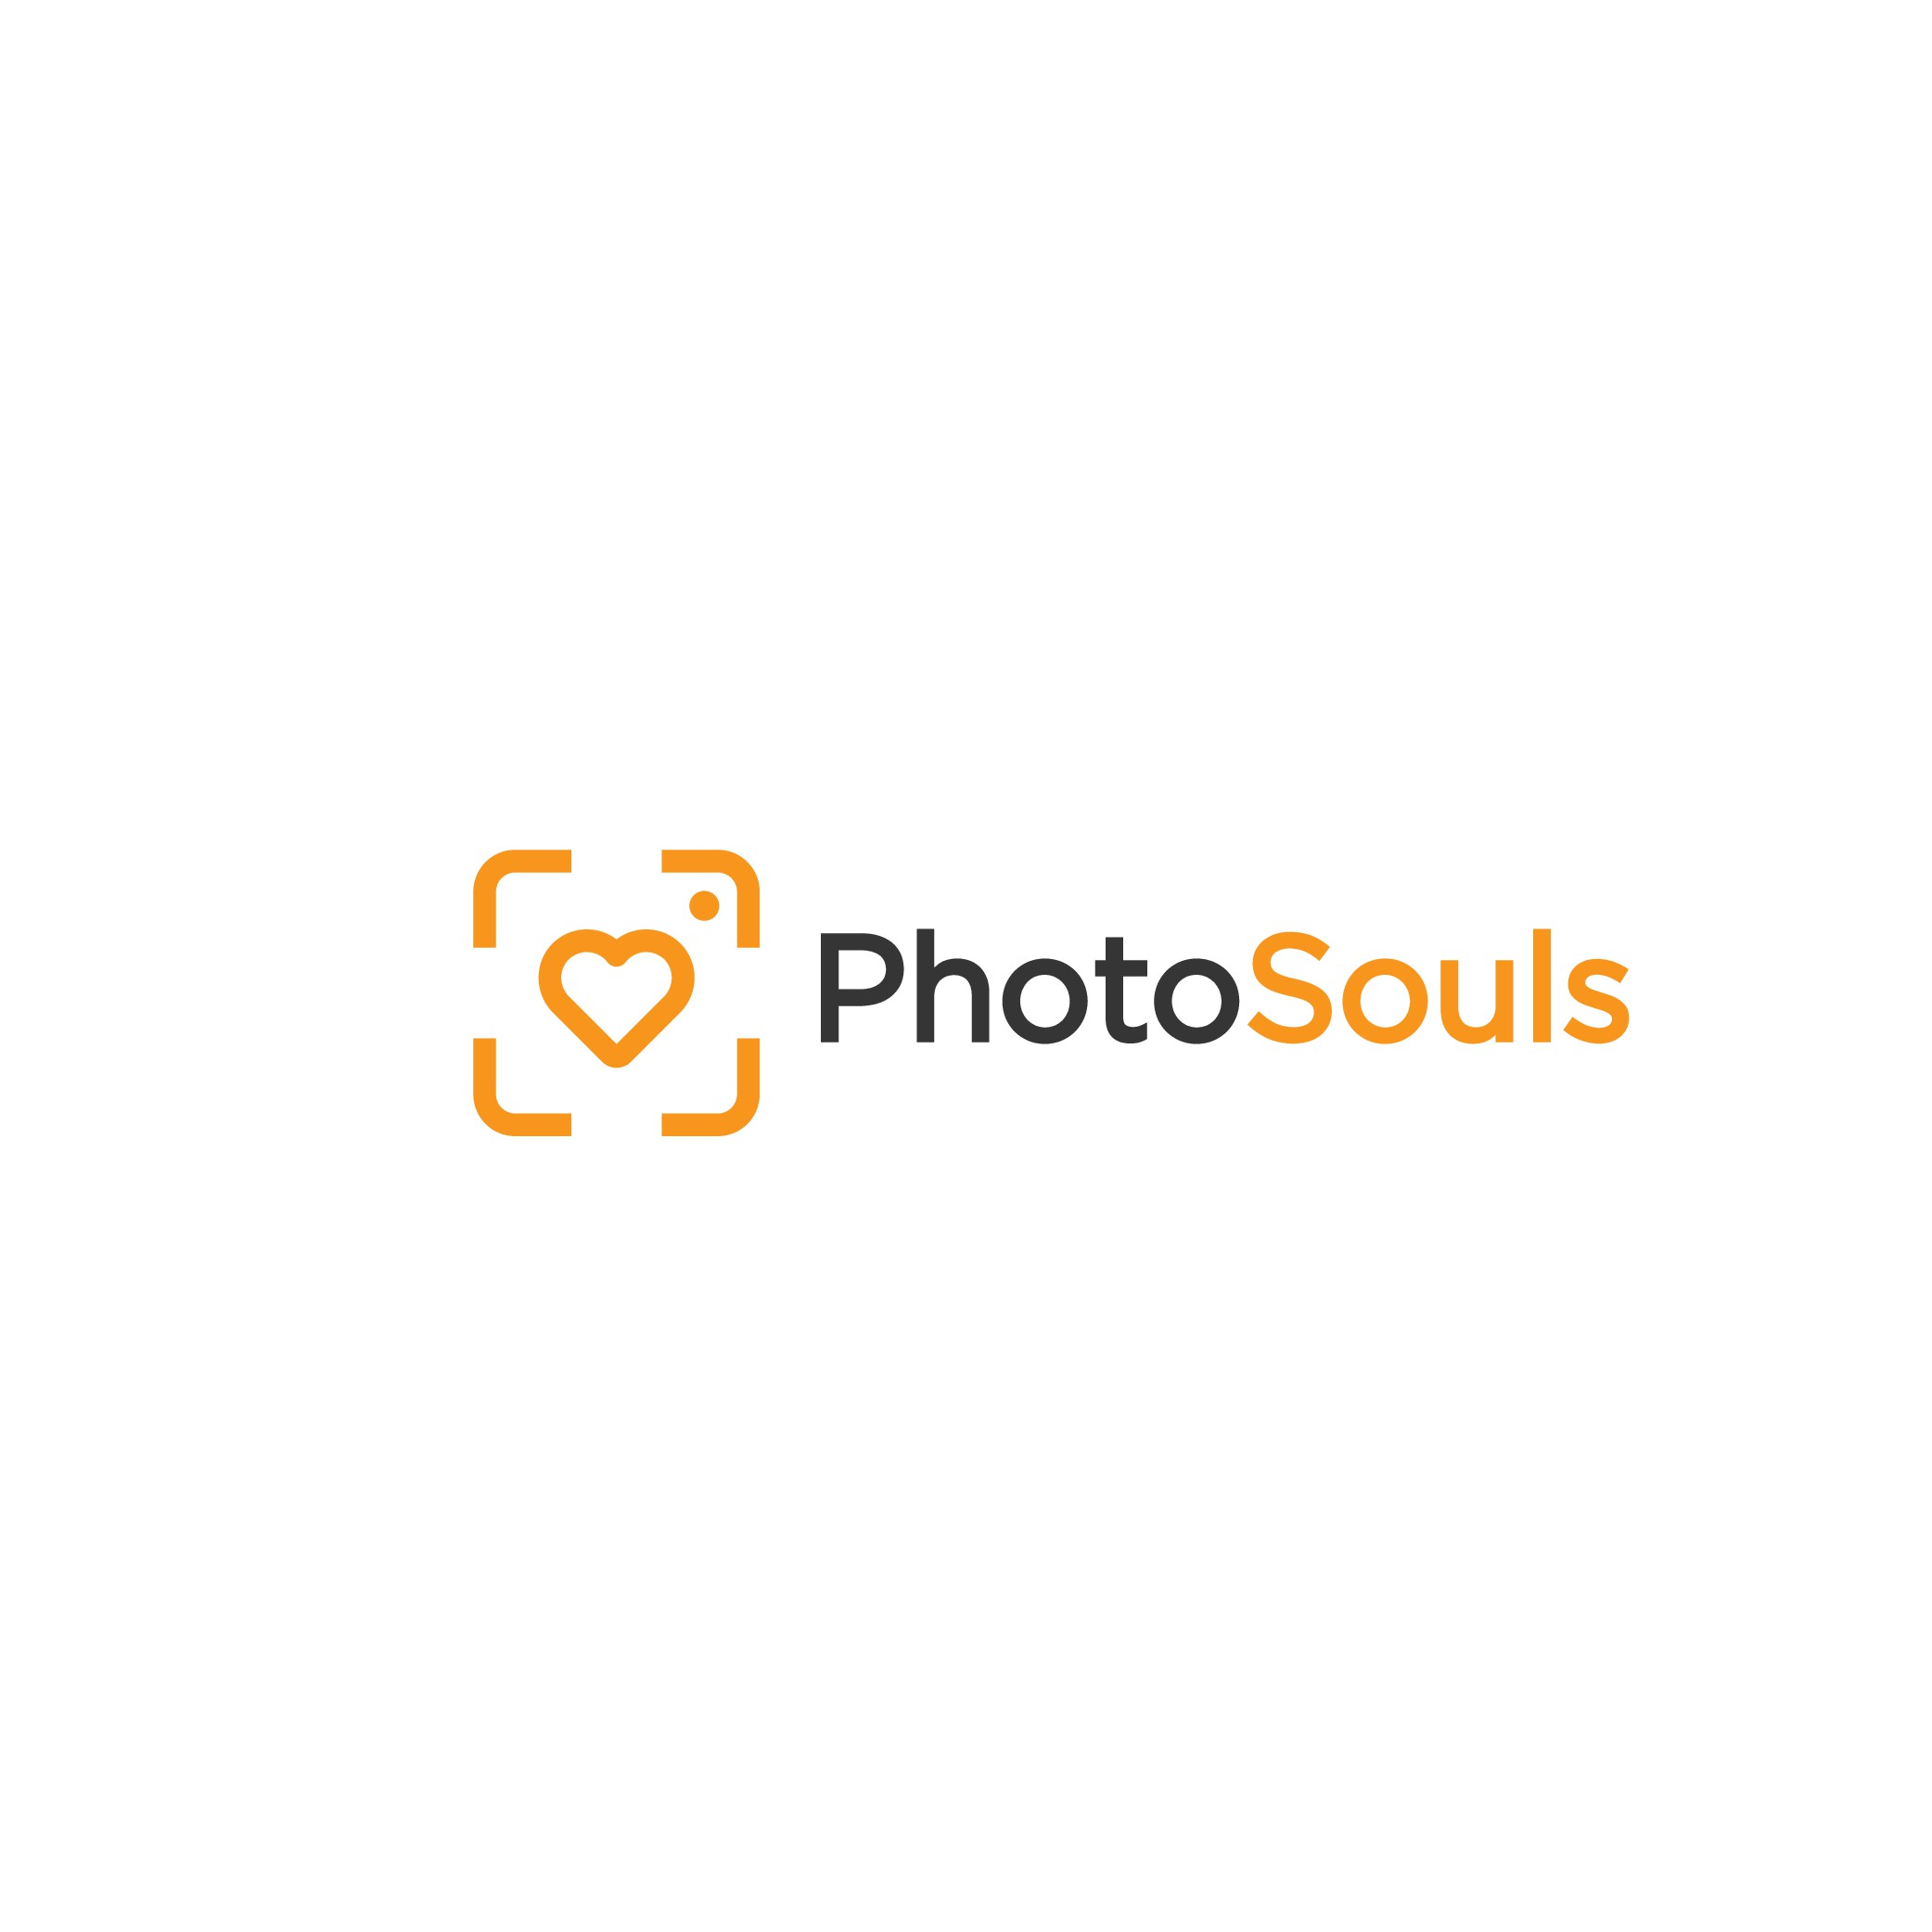 Logo for PhotoSouls - marketplace for photography services